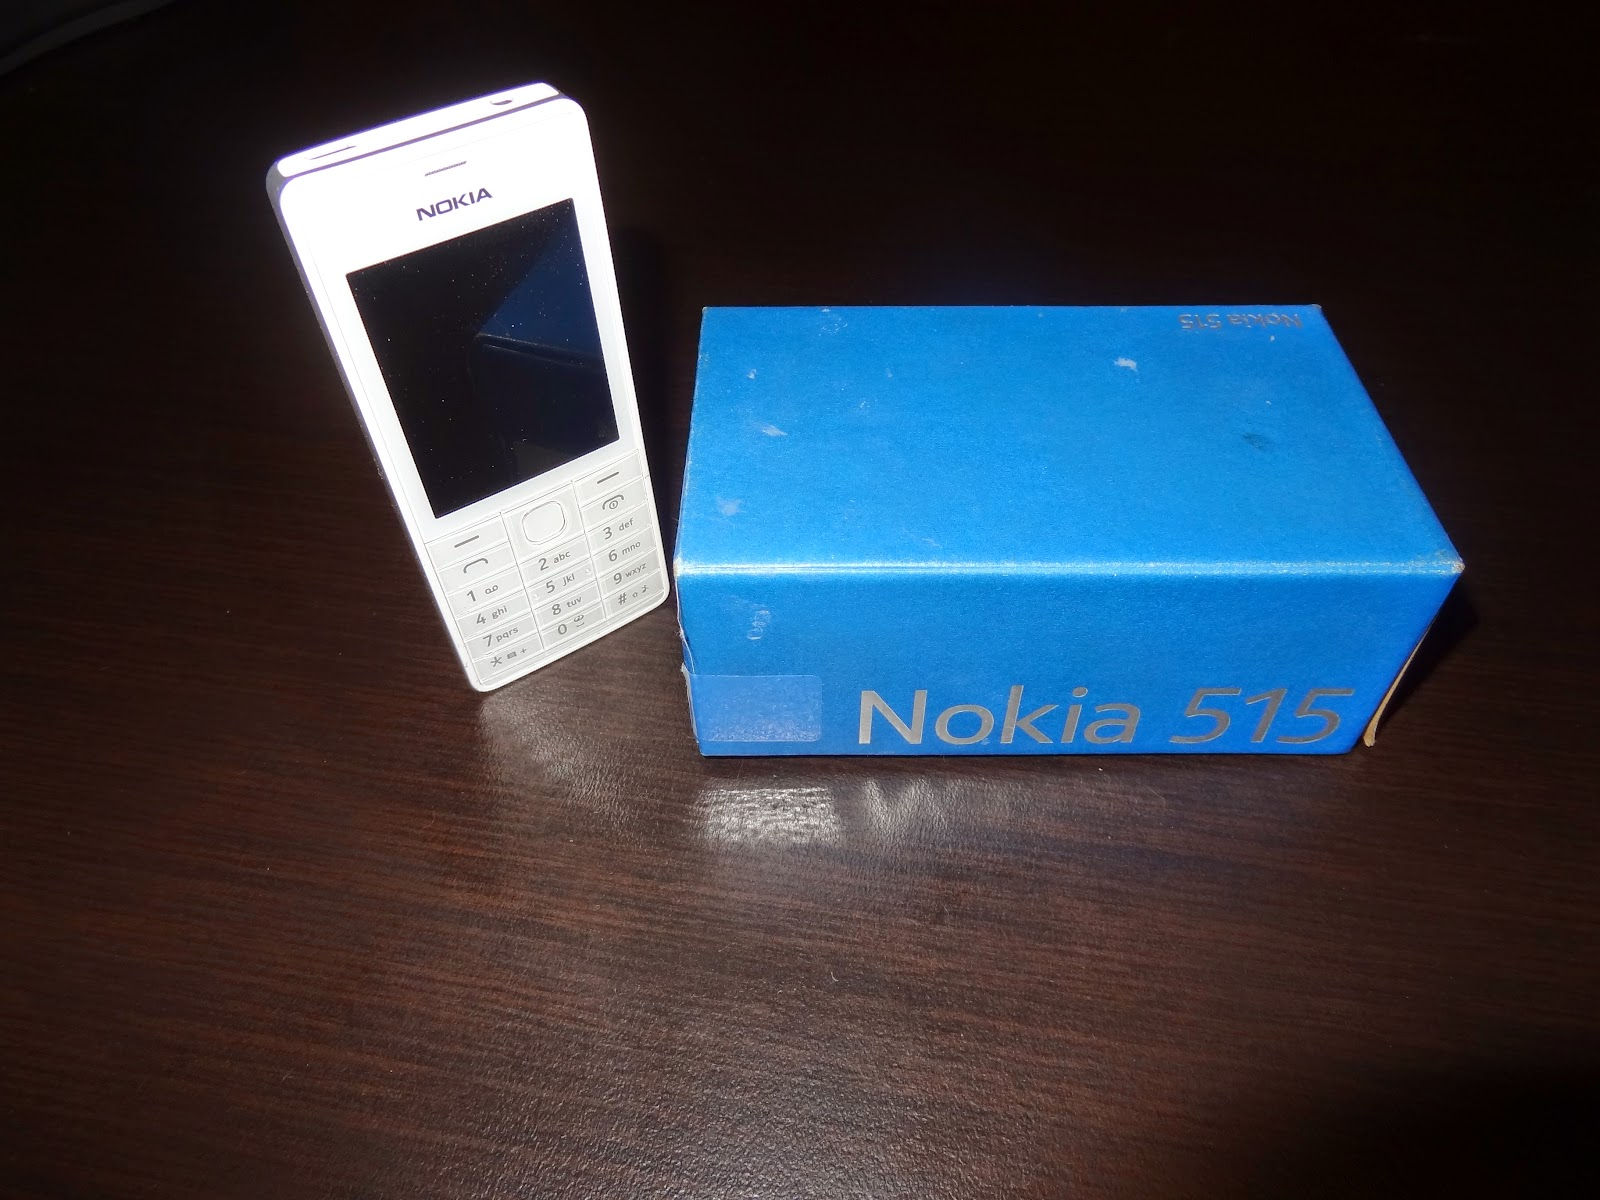 Nokia 515 phone review